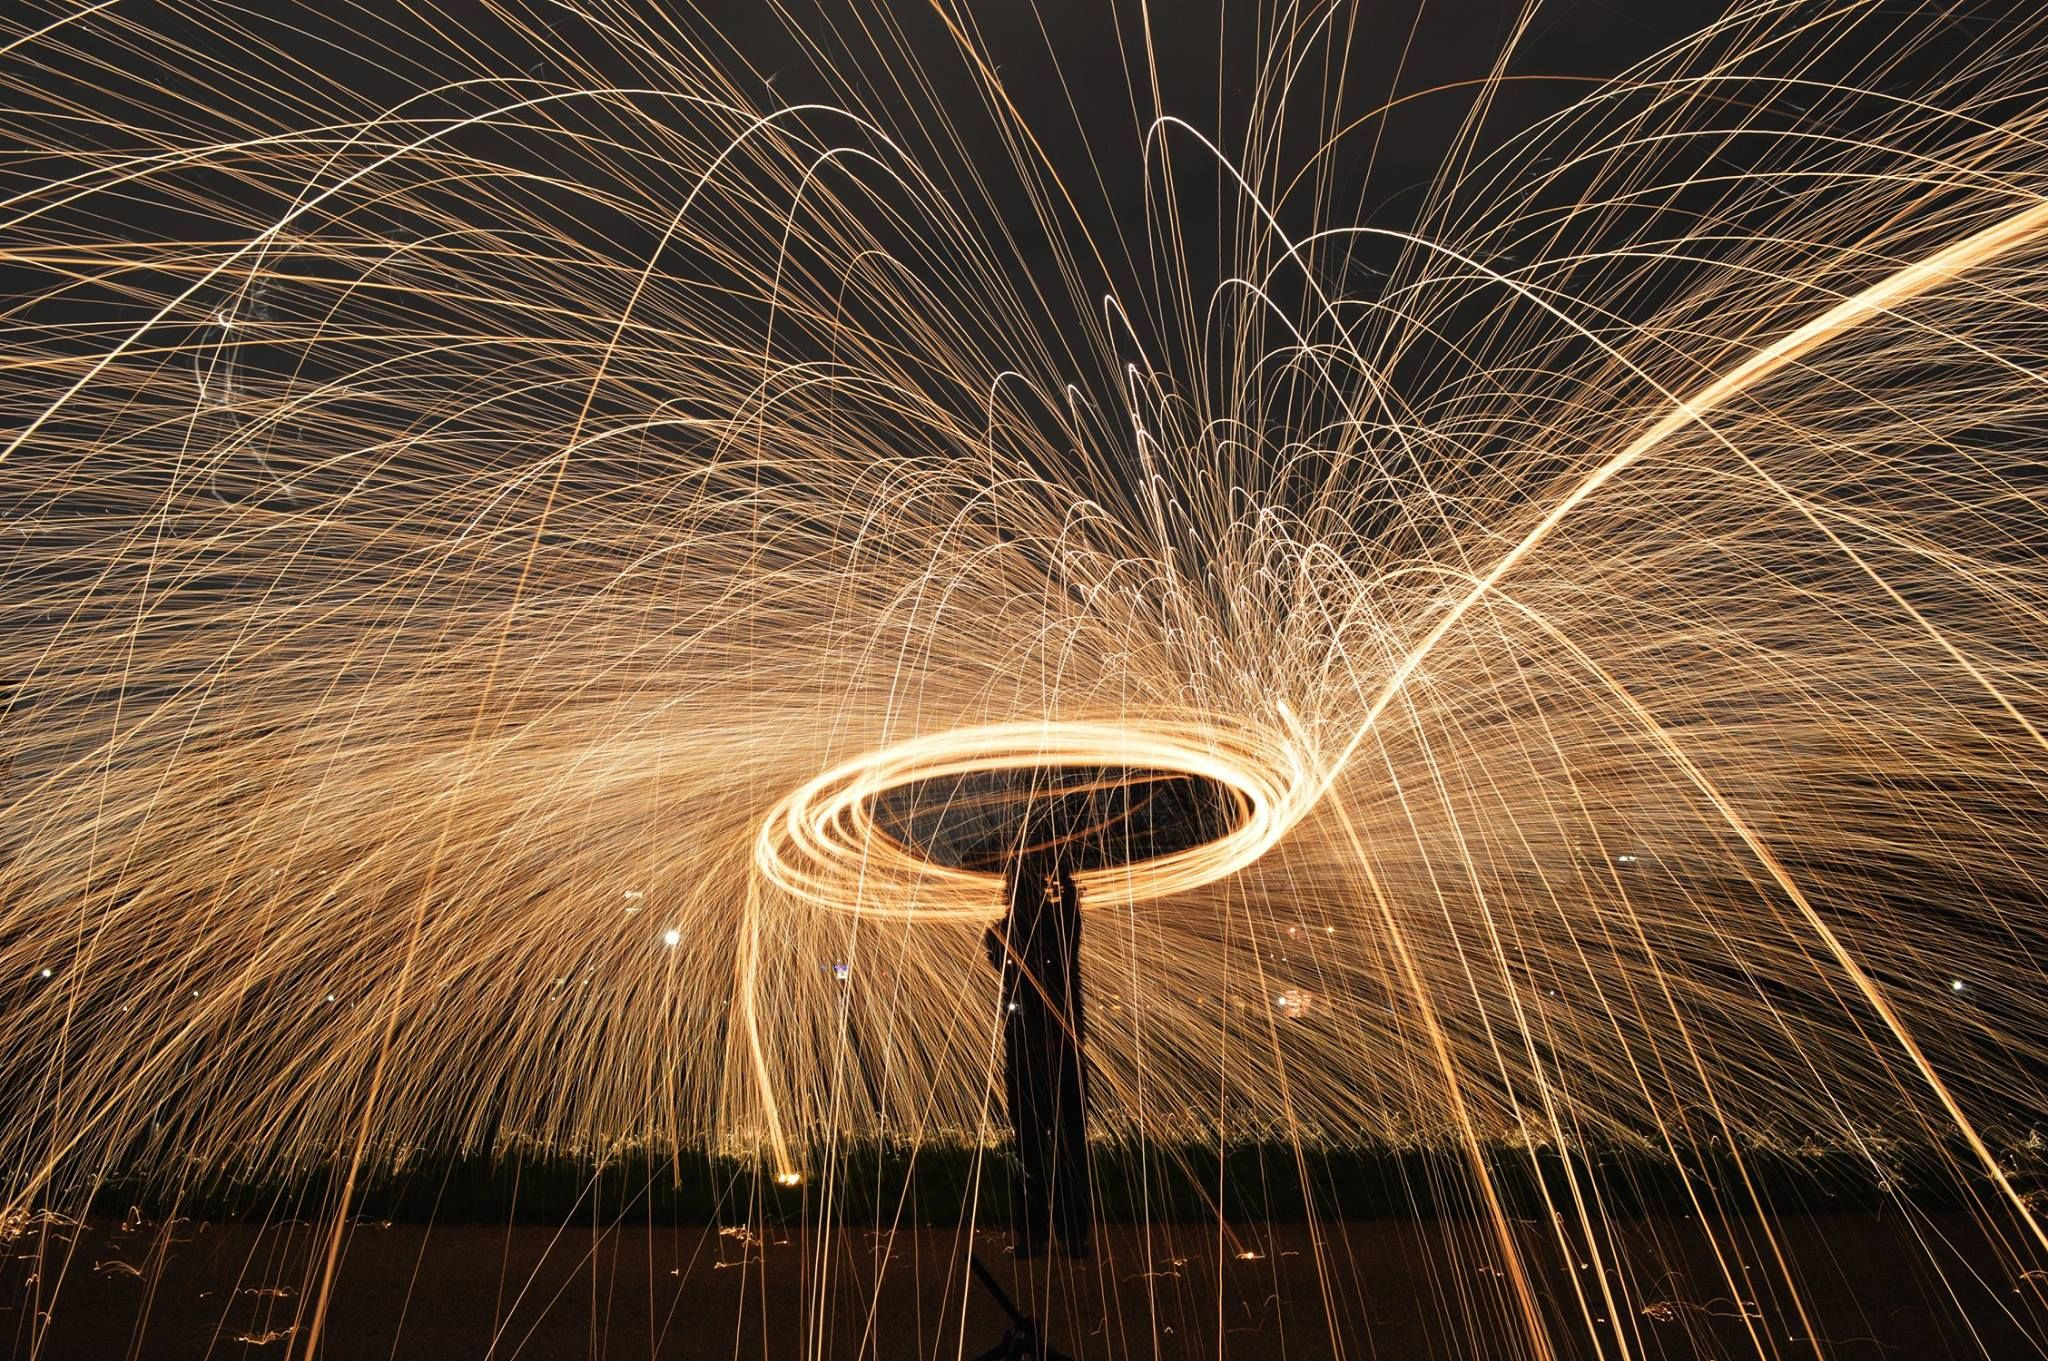 Steel Wool Photography by Storm Hayward